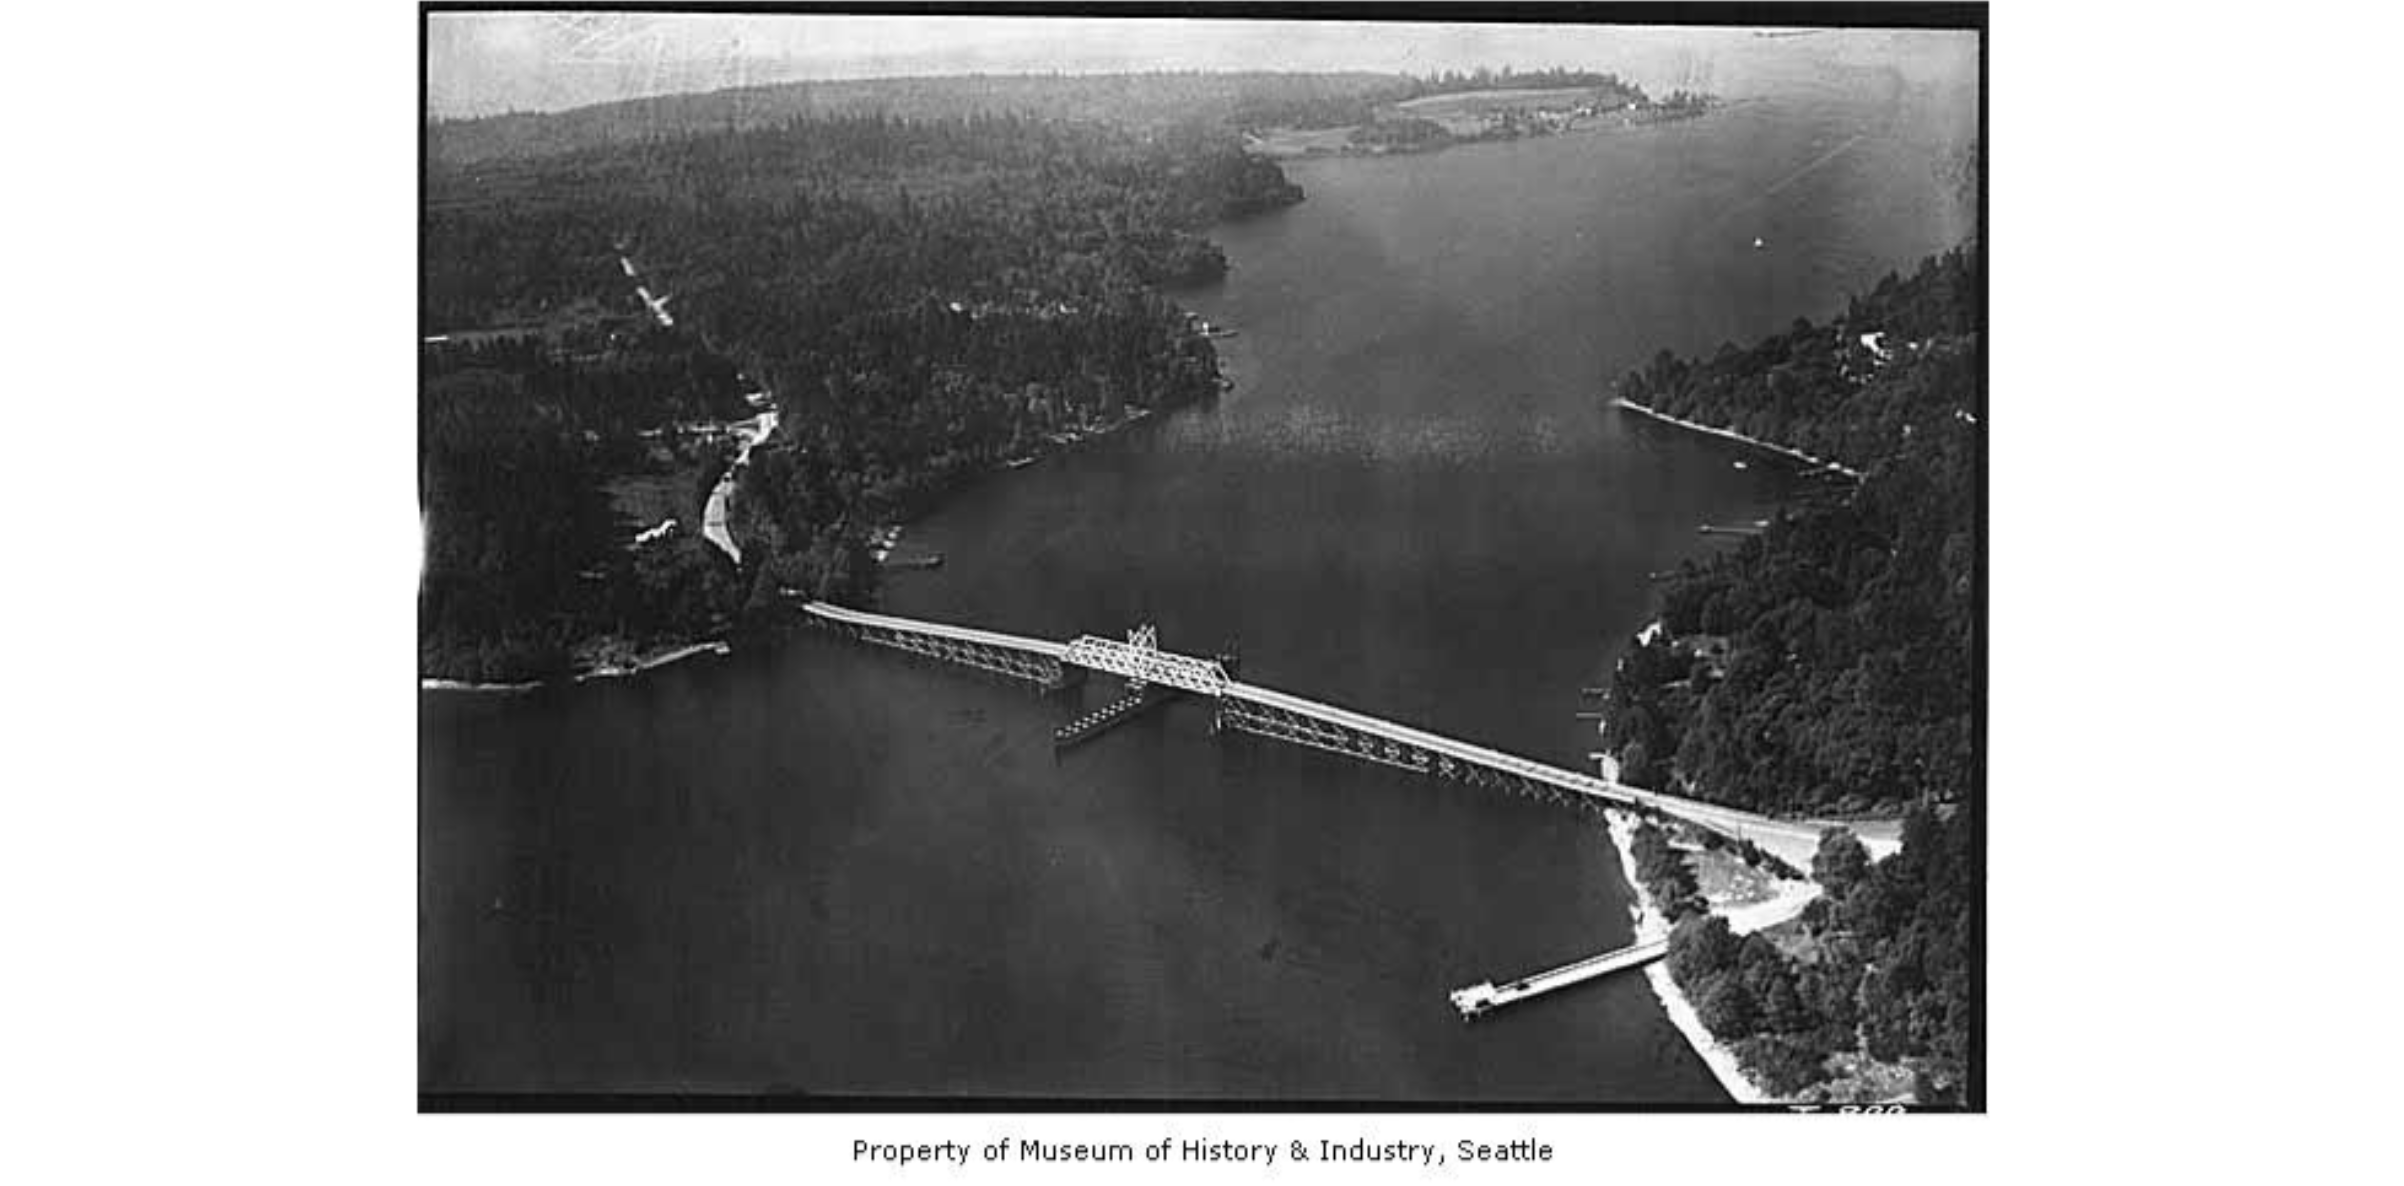 Photo of East Channel Bridge in 1938 by Charles Laidlaw, courtesy of MOHAI. This was the first bridge to connect the Seattle area to Mercer Island.